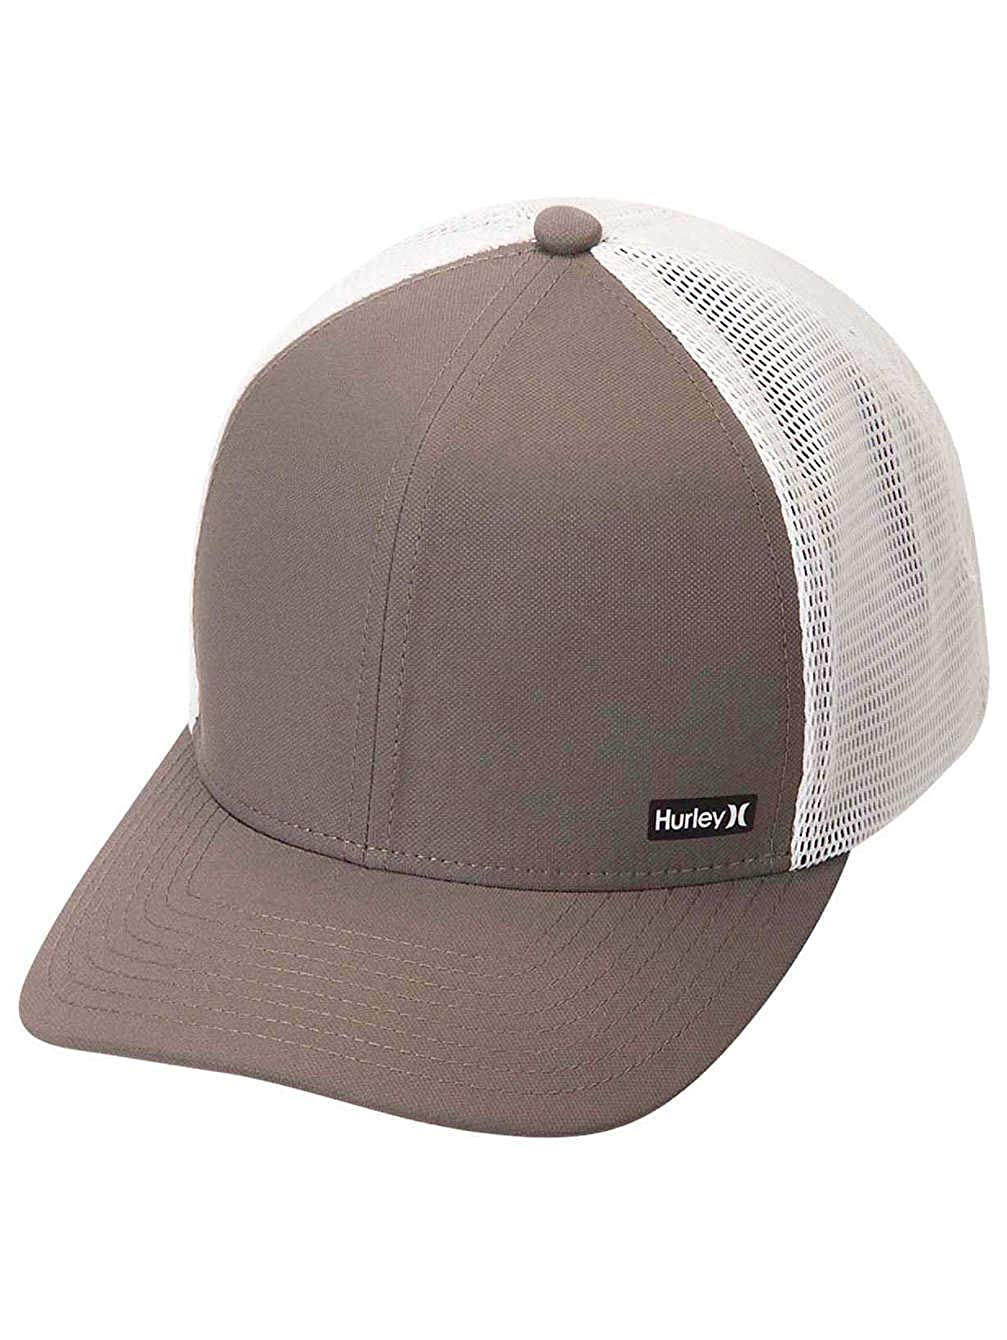 259f52f21 Hurley Men's League Dri-fit Snapback Baseball Cap